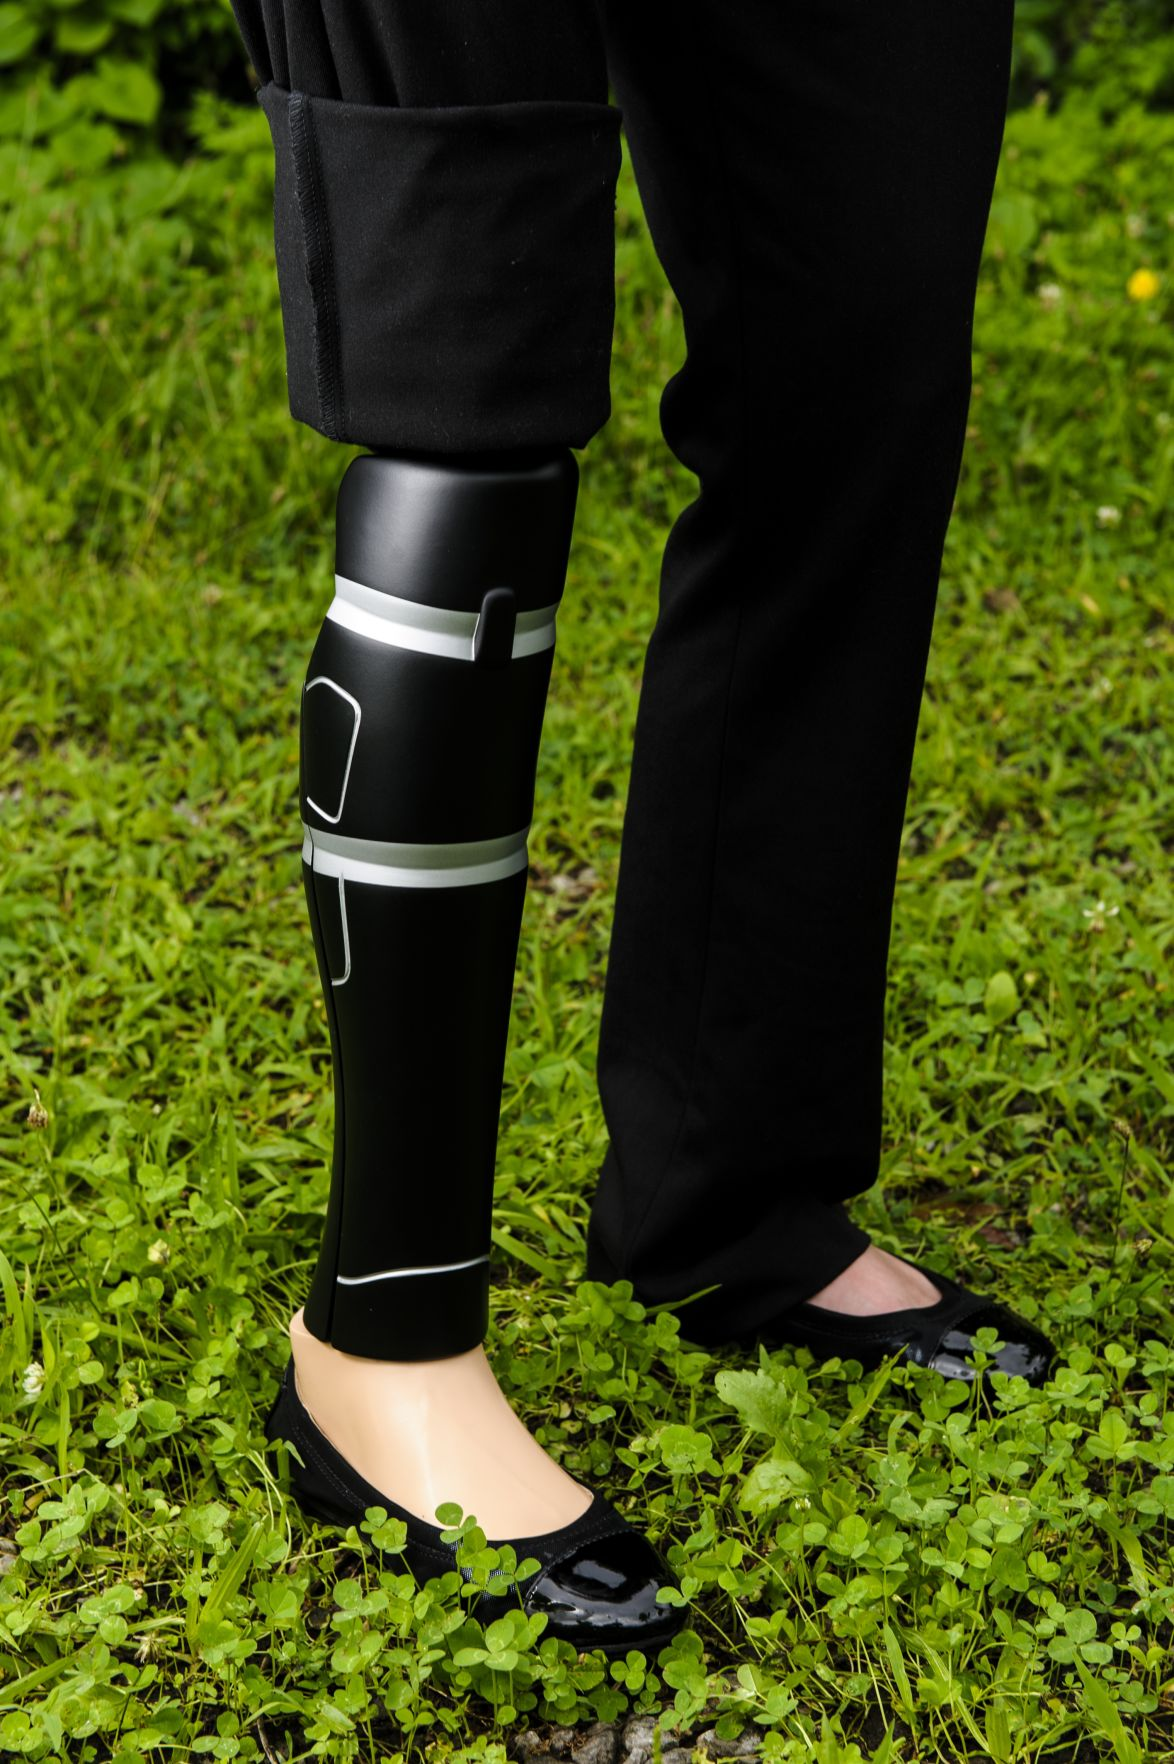 Cross Lanes native to model coverings for prosthetic legs